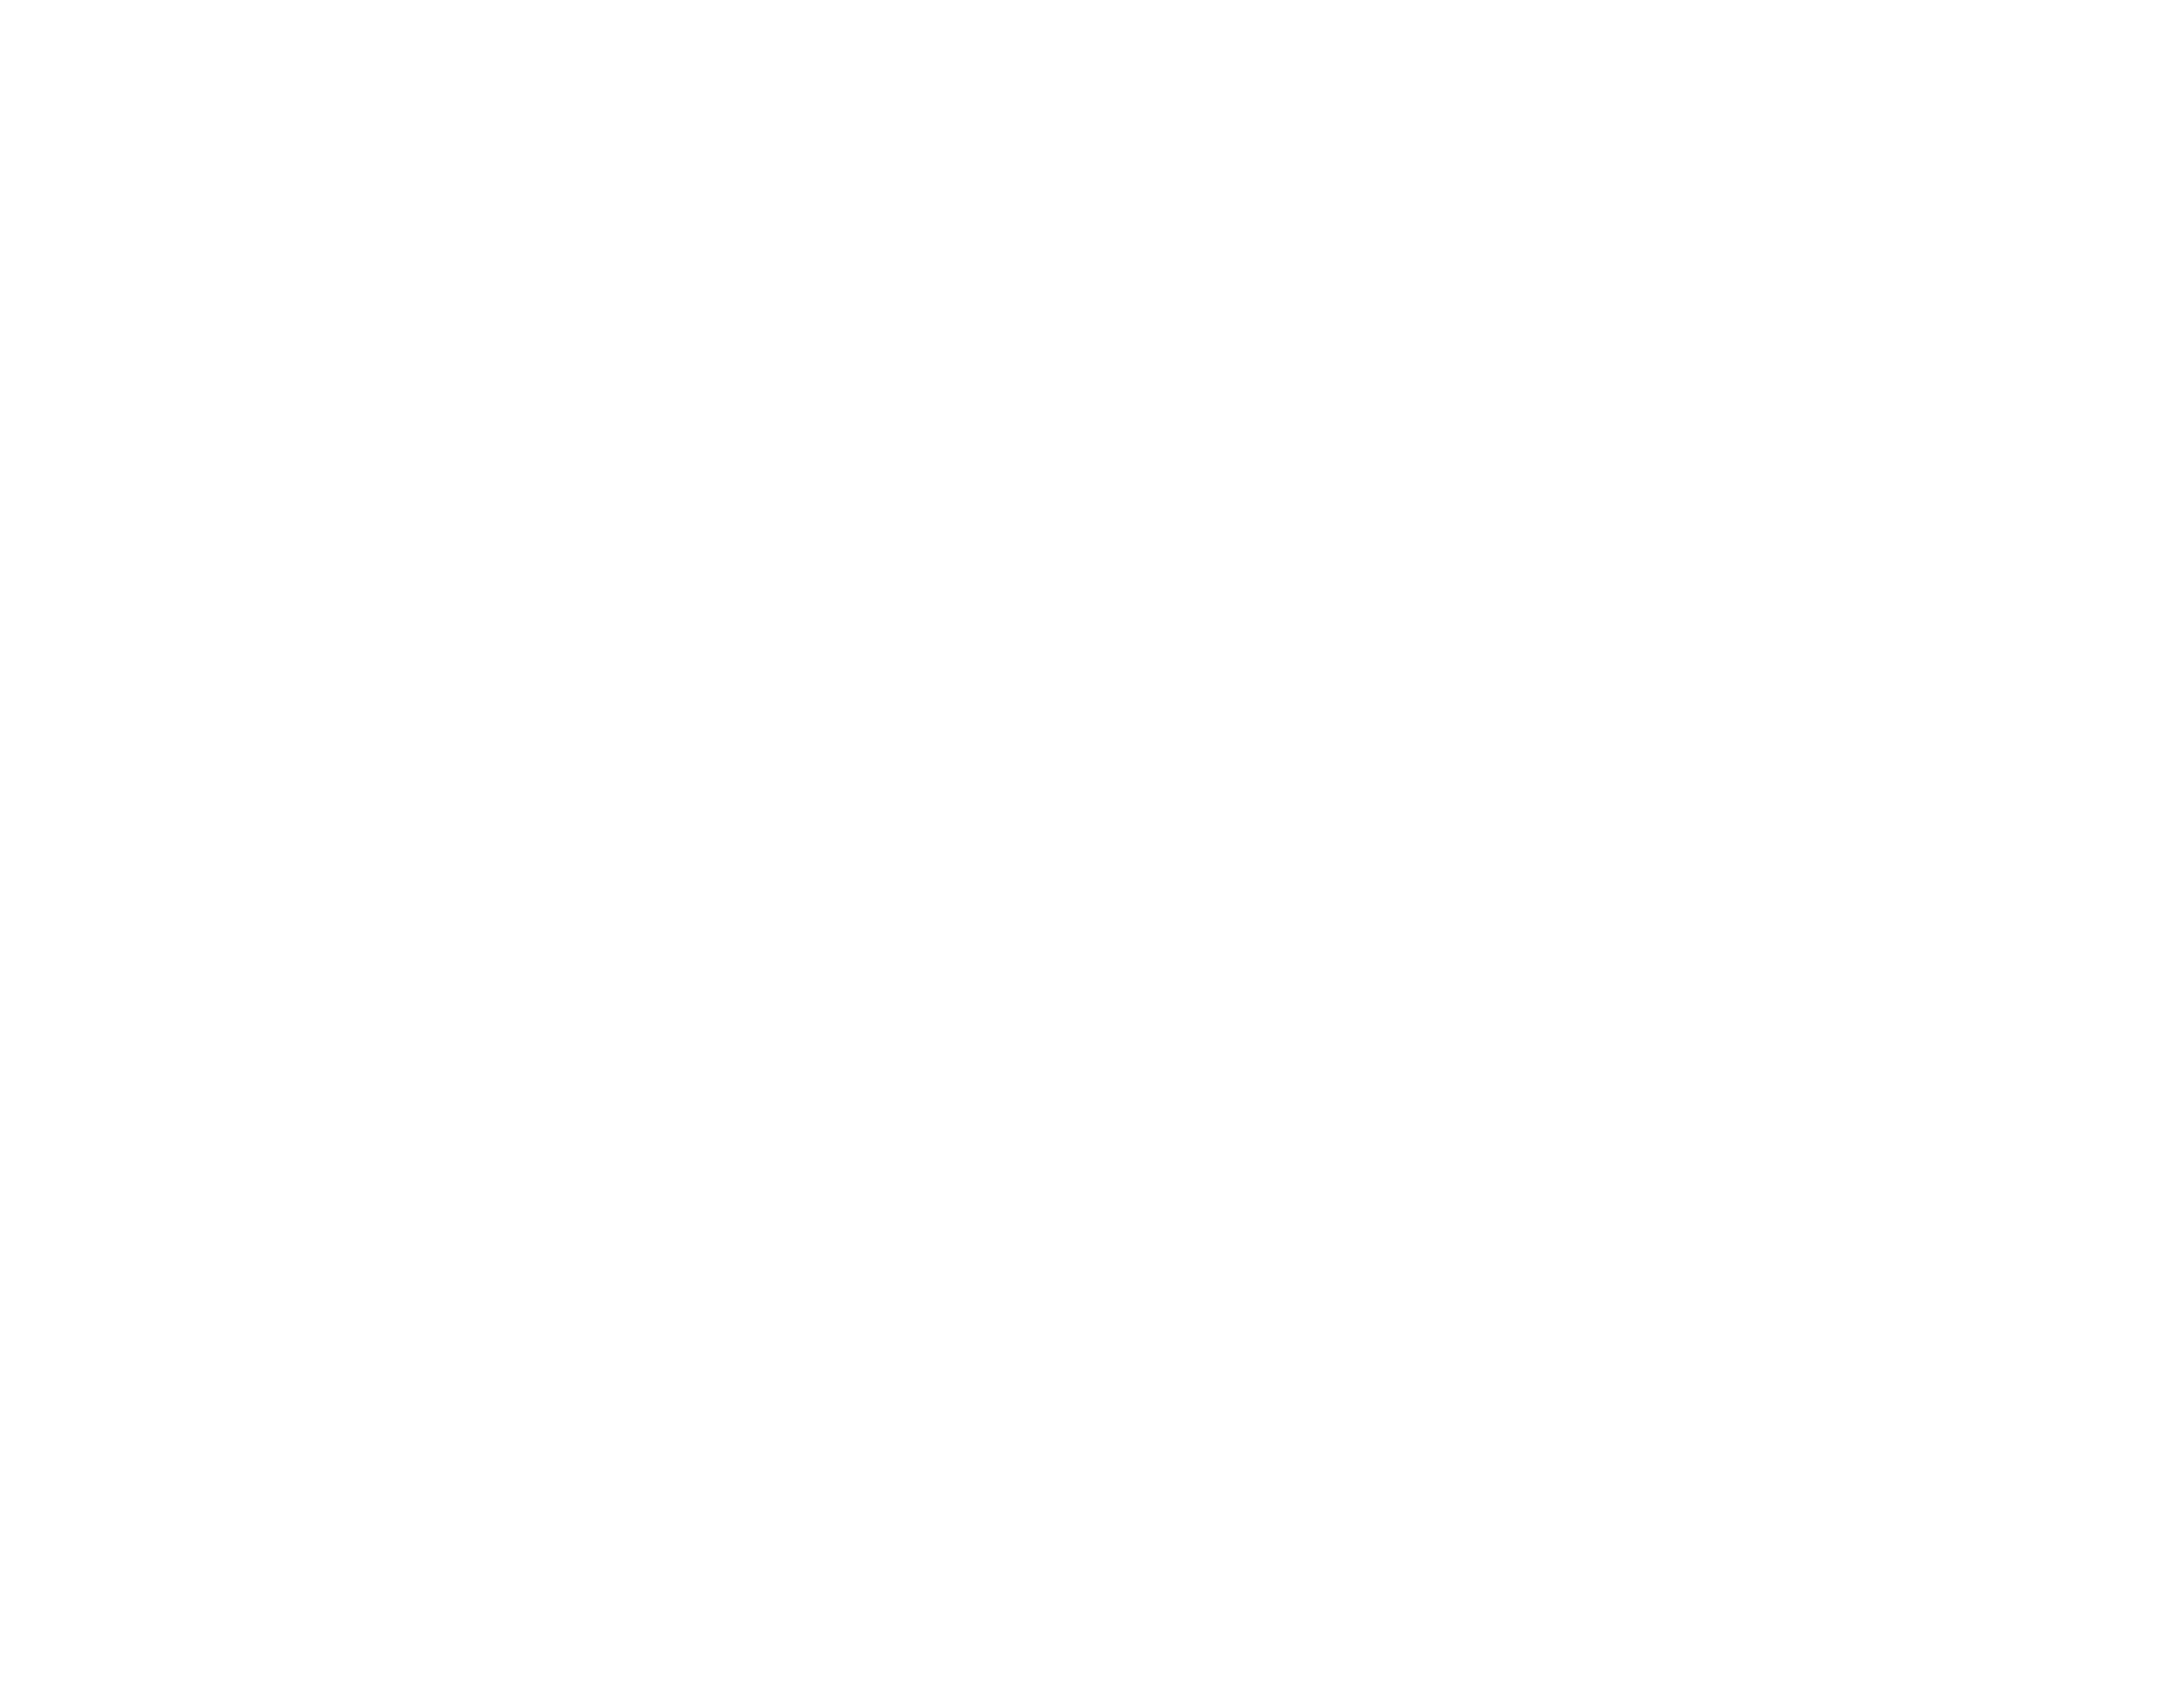 Storm water treatment troughs integrated in raised planters will direct water  flow, remove pollutants, and reduce runoffs.